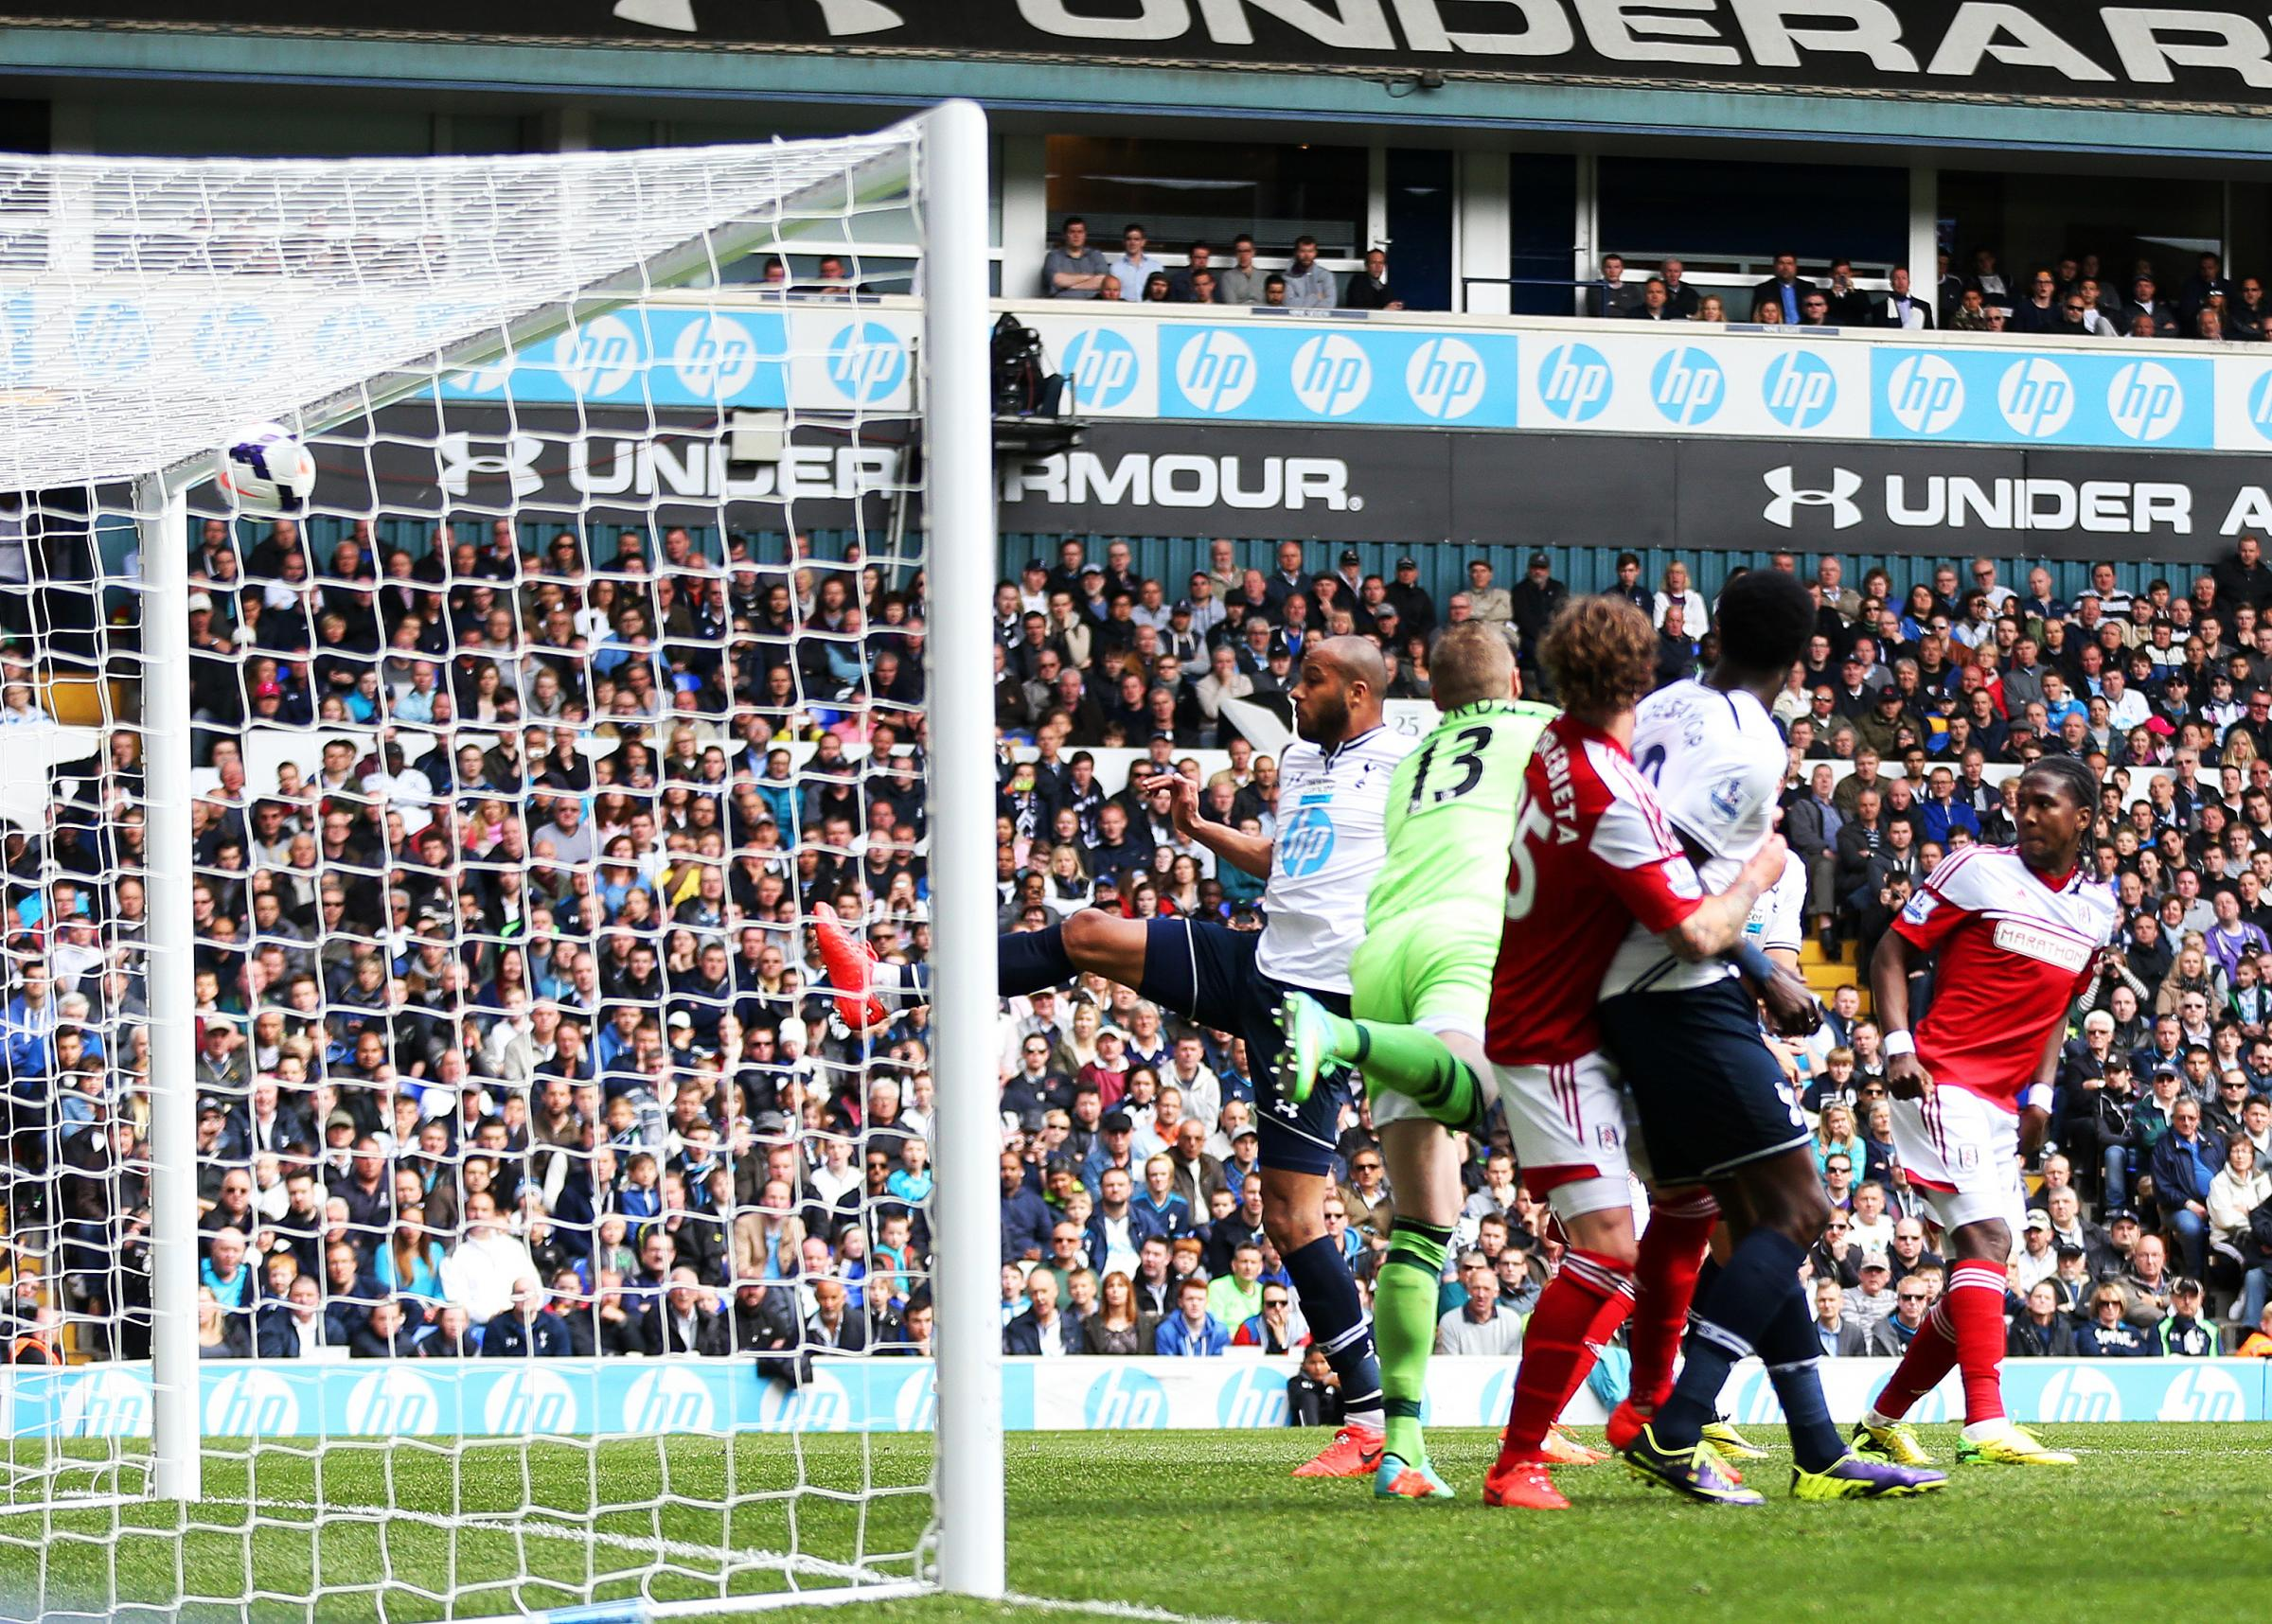 Younes Kaboul scored Spurs' third goal to quash any hopes of a Fulham revival